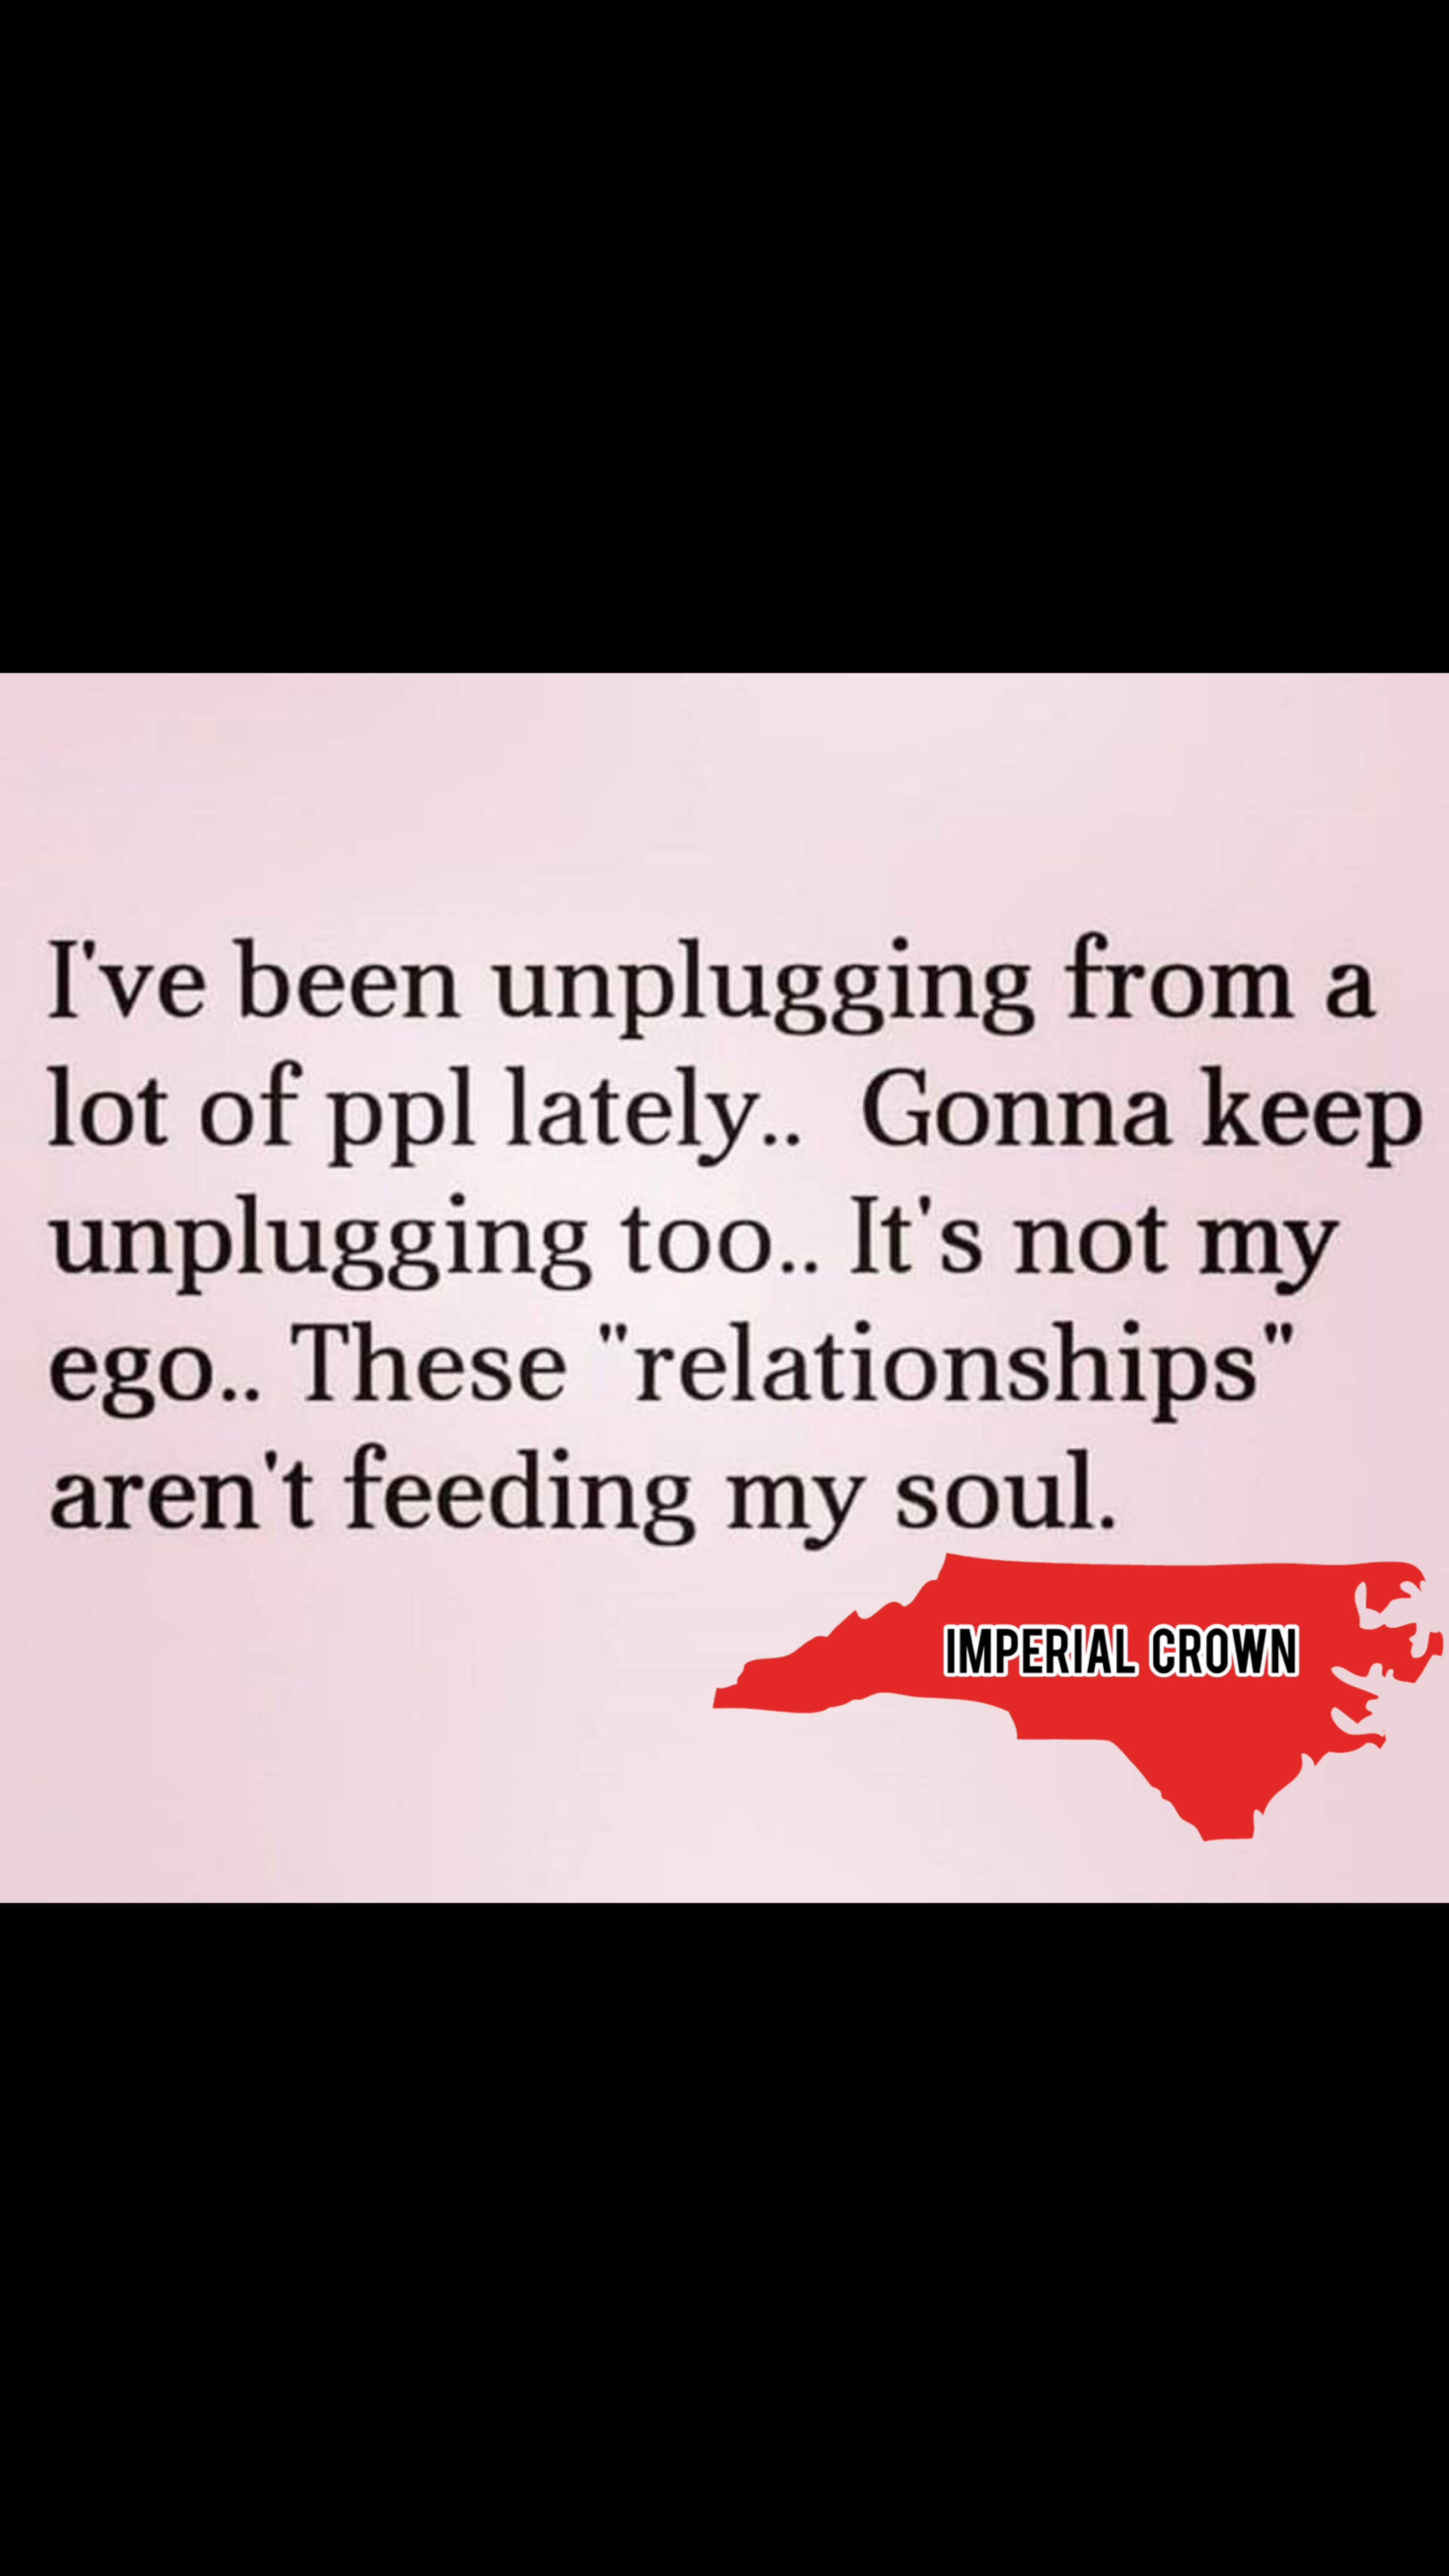 I've been unplugging from a lot of ppl lately…..